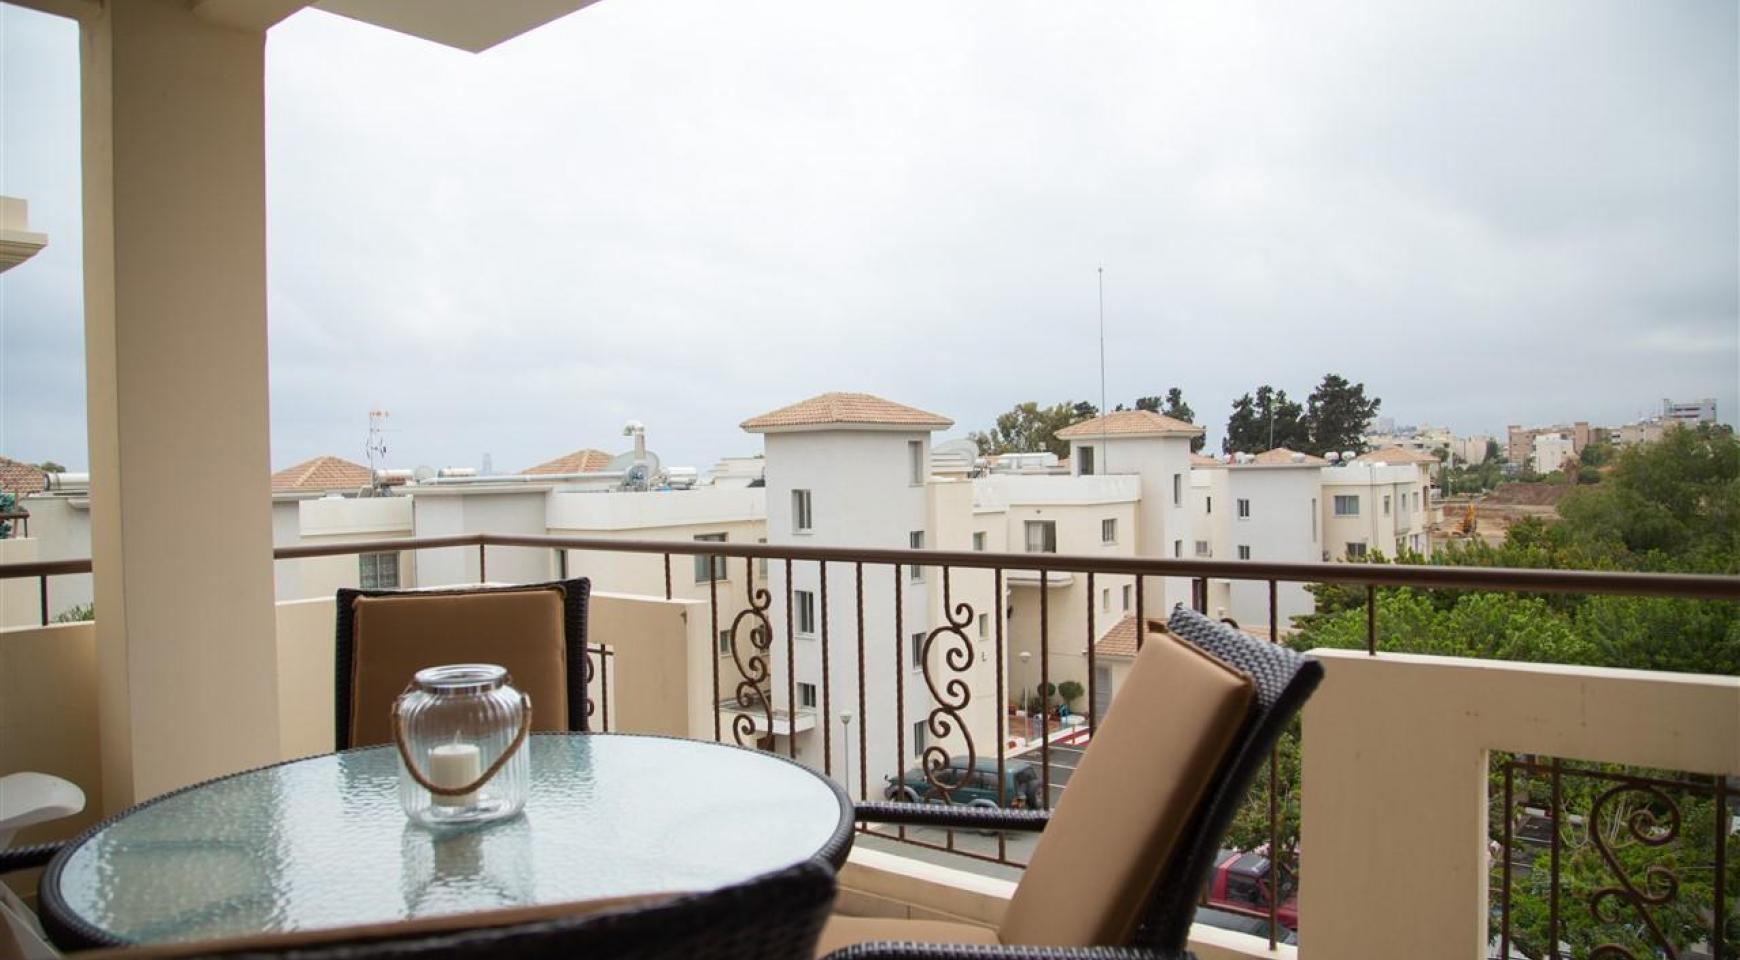 2 Bedroom Apartment in the Complex near the Sea - 25